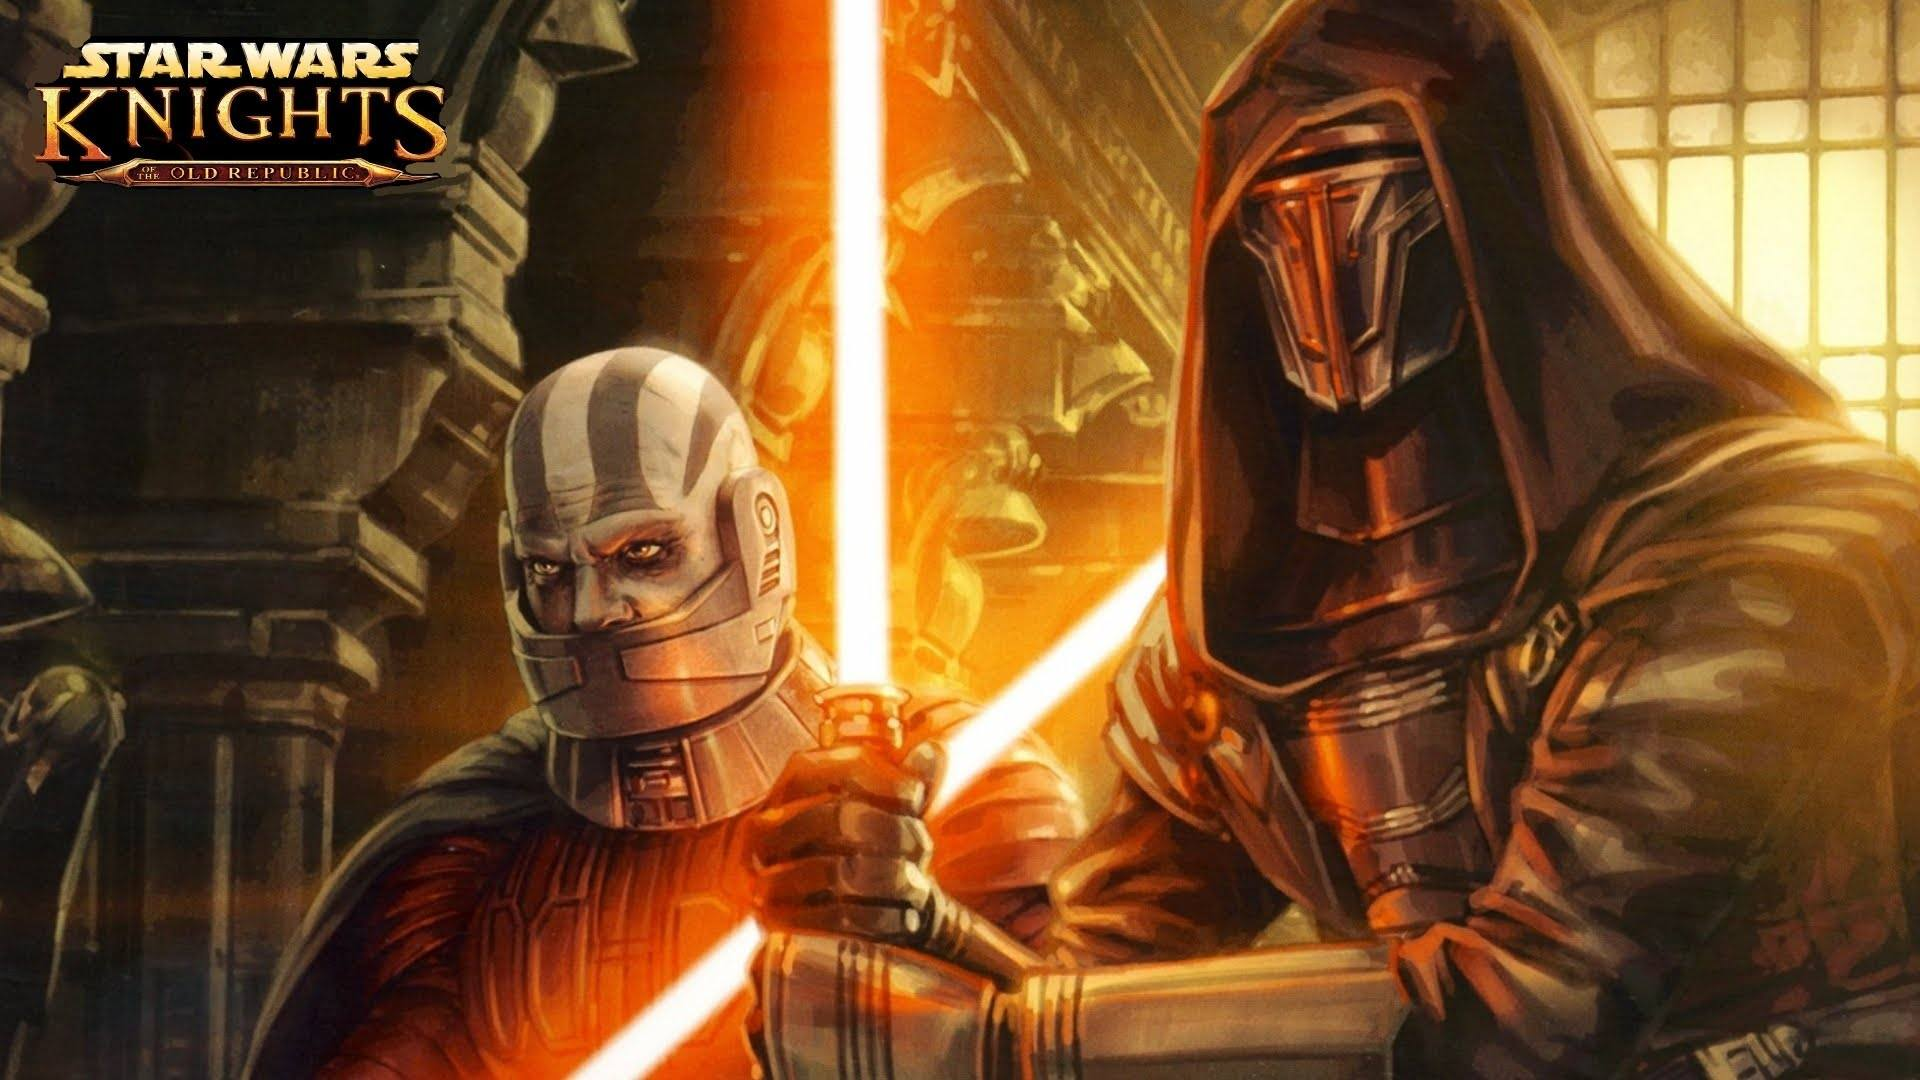 The role-playing video game Star Wars: Knights of the Old Republic